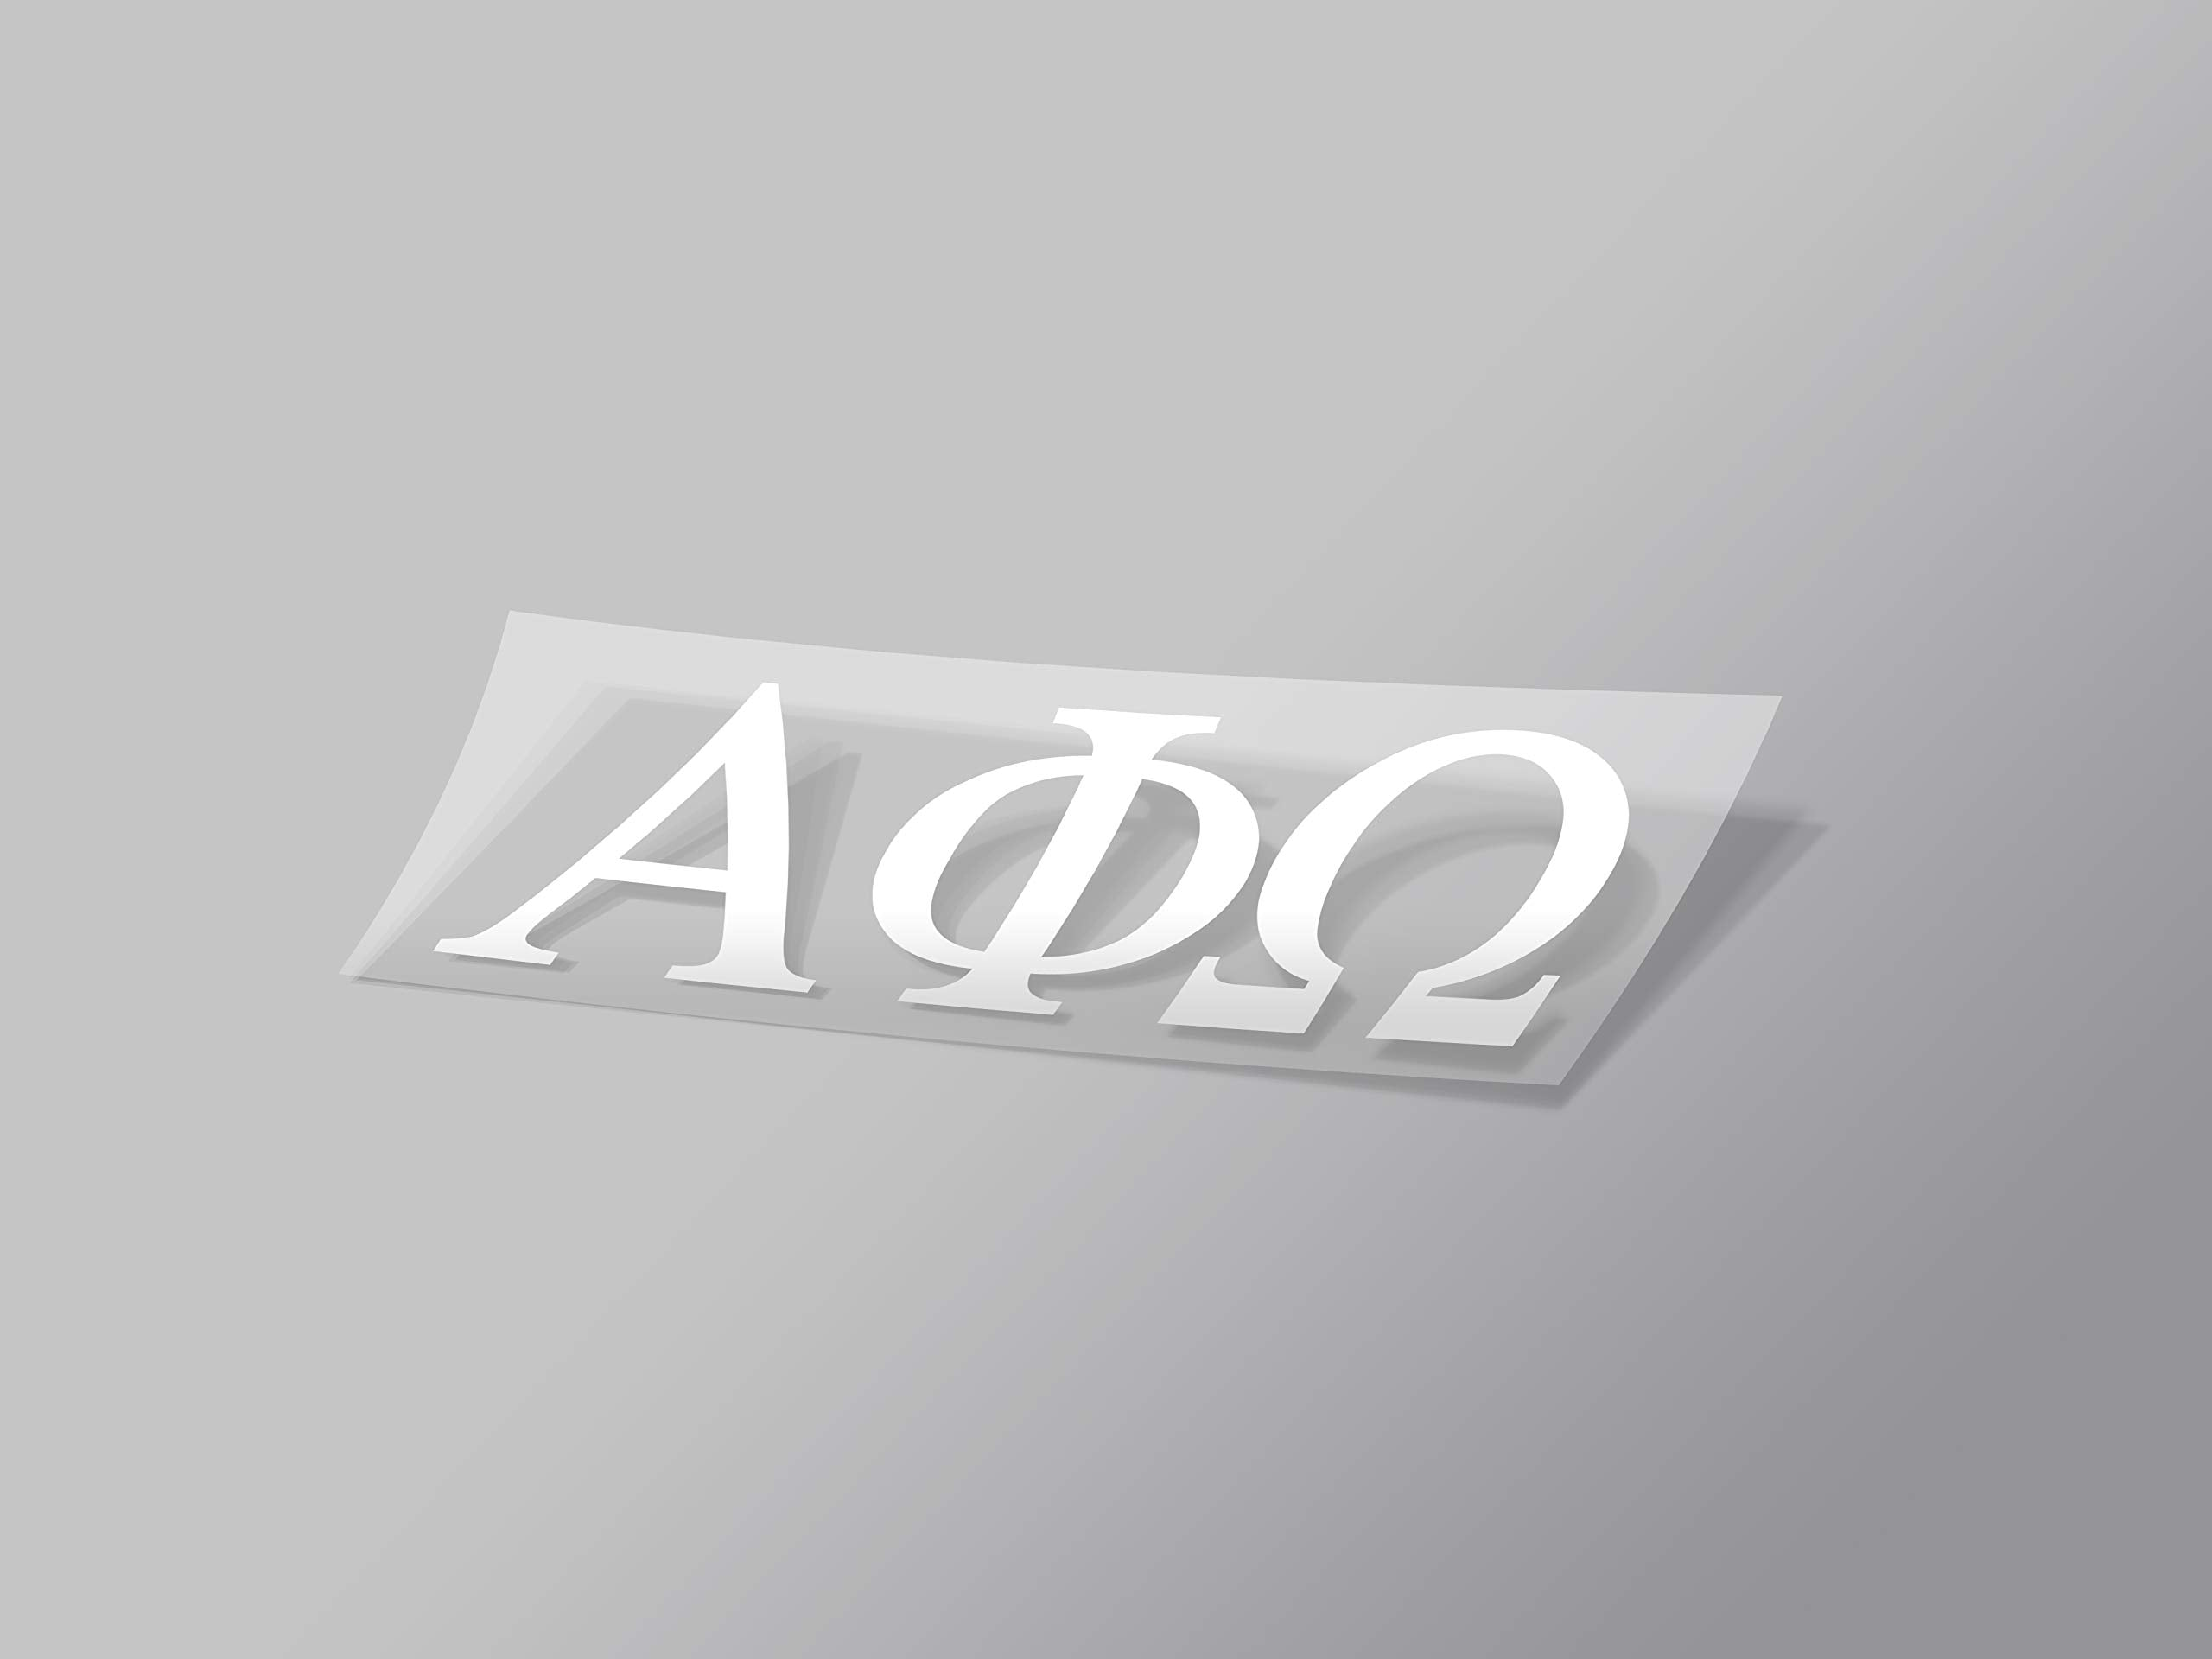 "Alpha Phi Sticker Greek Sorority Decal for Car, Laptop, Windows, Officially Licensed Product, Monogram Design 2.5"" Tall - White"